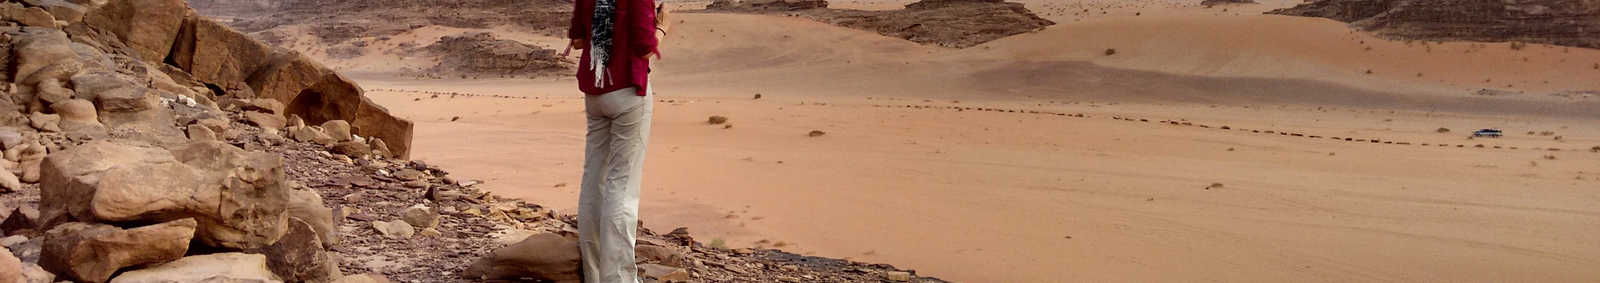 Looking out over Wadi Rum desert